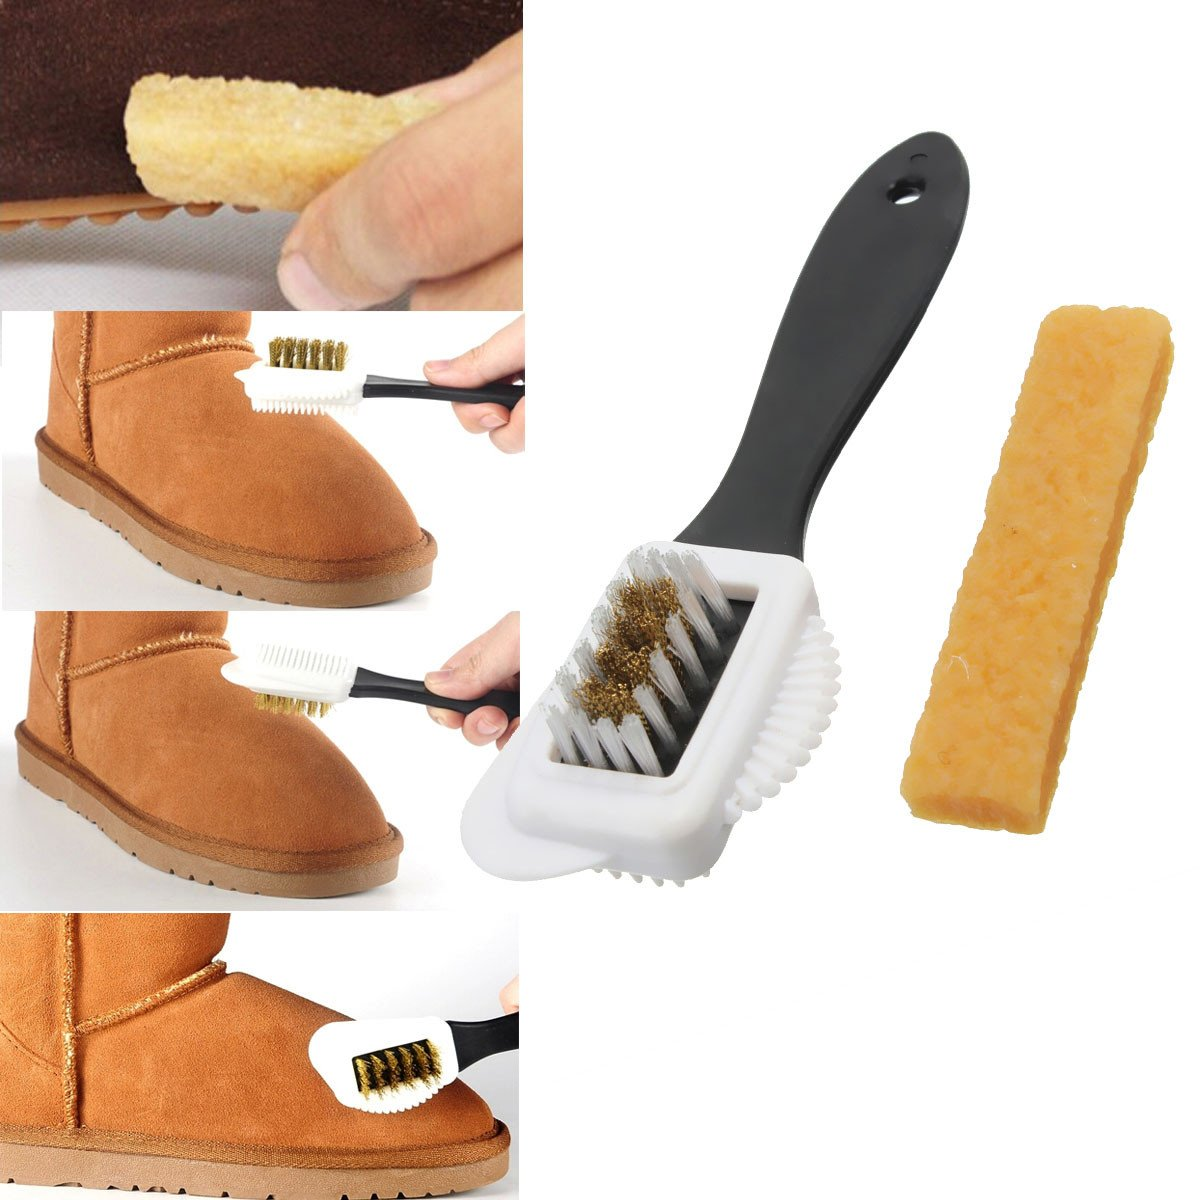 Double Sides Cleaning Brush Rubber Eraser Set for Suede Nubuck Shoes Boot Cleaner Buckdirect Worldwide Ltd.